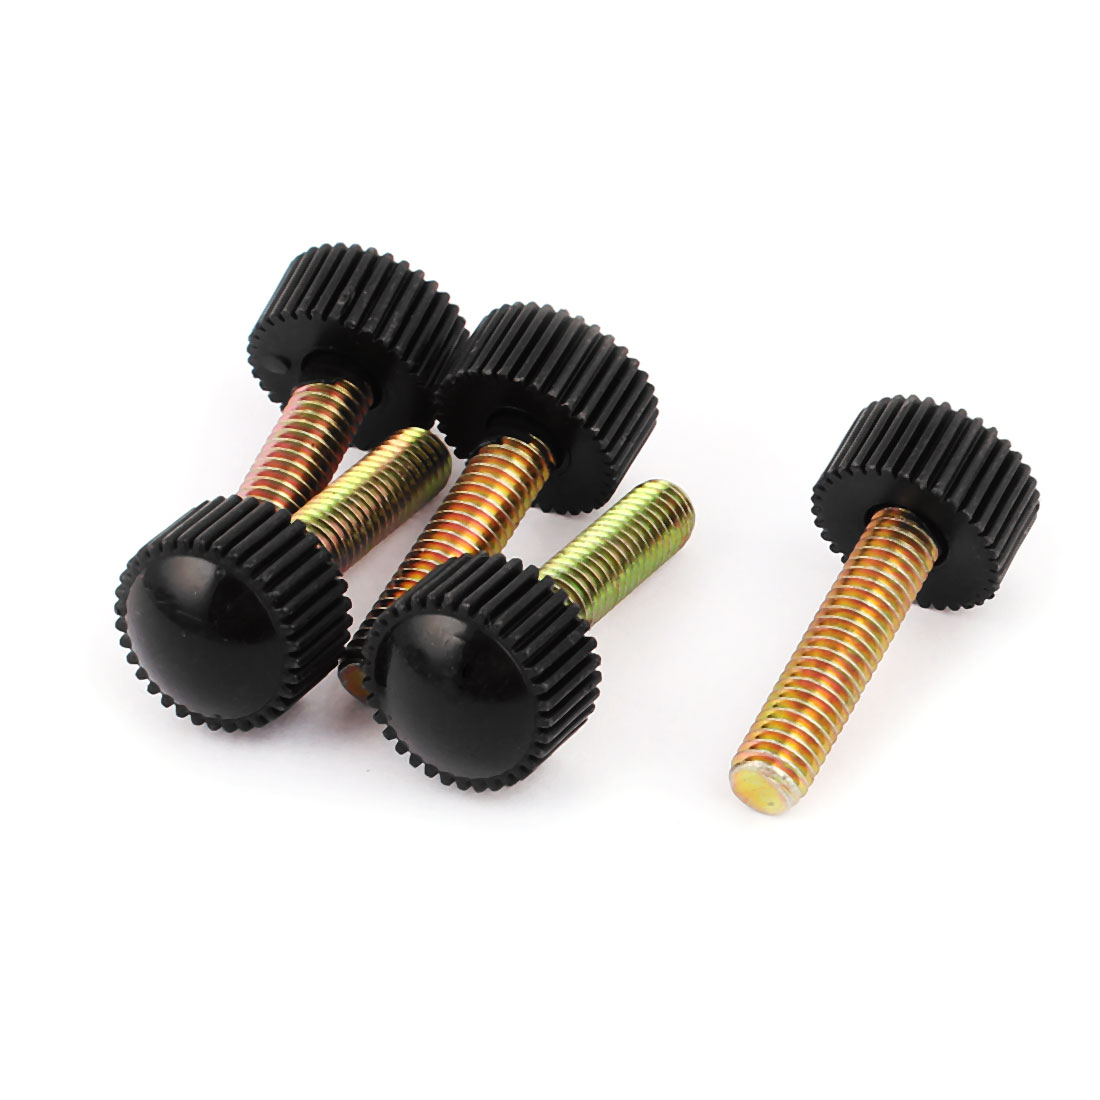 M6 x 25mm Round Head Screw On Straight Knurled Clamping Knob Grips Black 5pcs